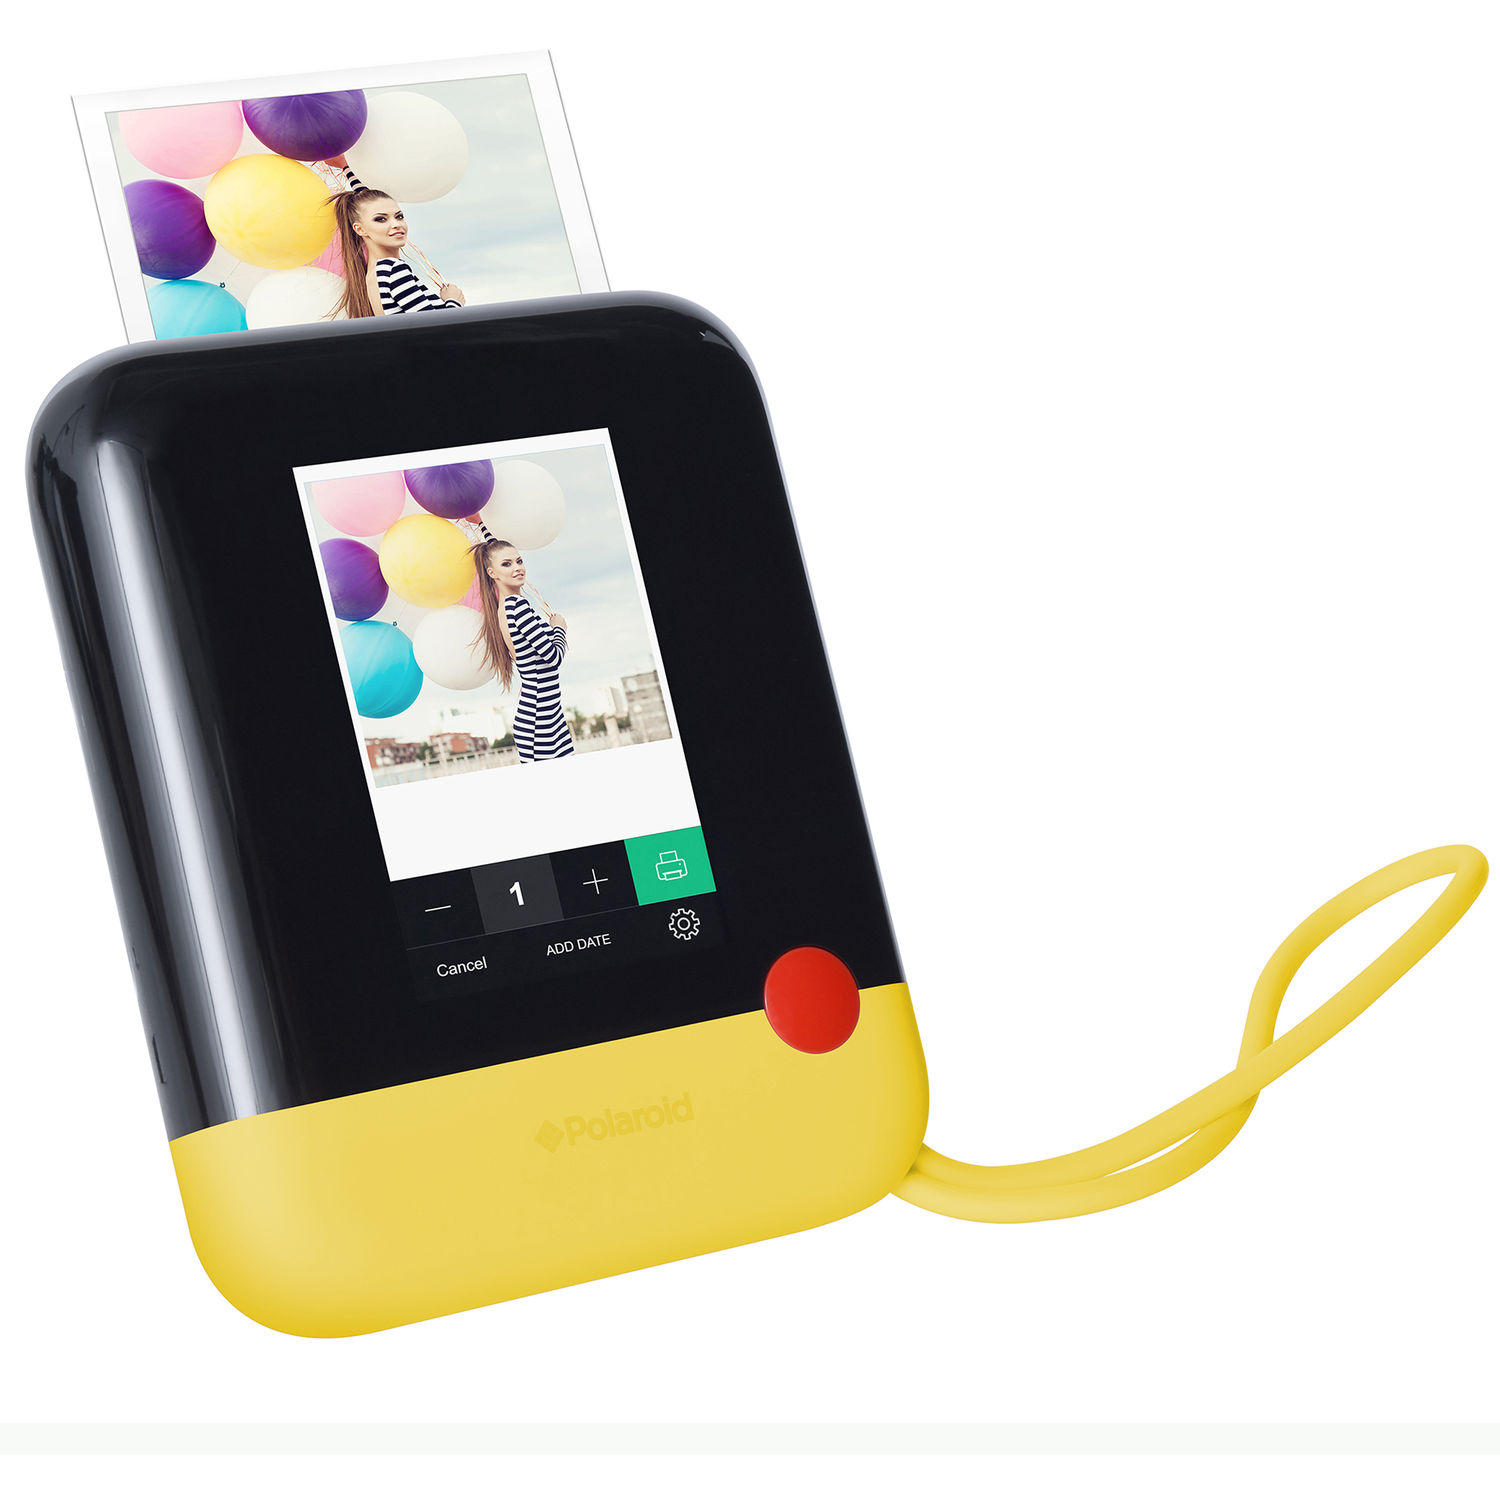 دوربین Pop Instant پولاروید  Polaroid Pop Instant Print Digital Camera